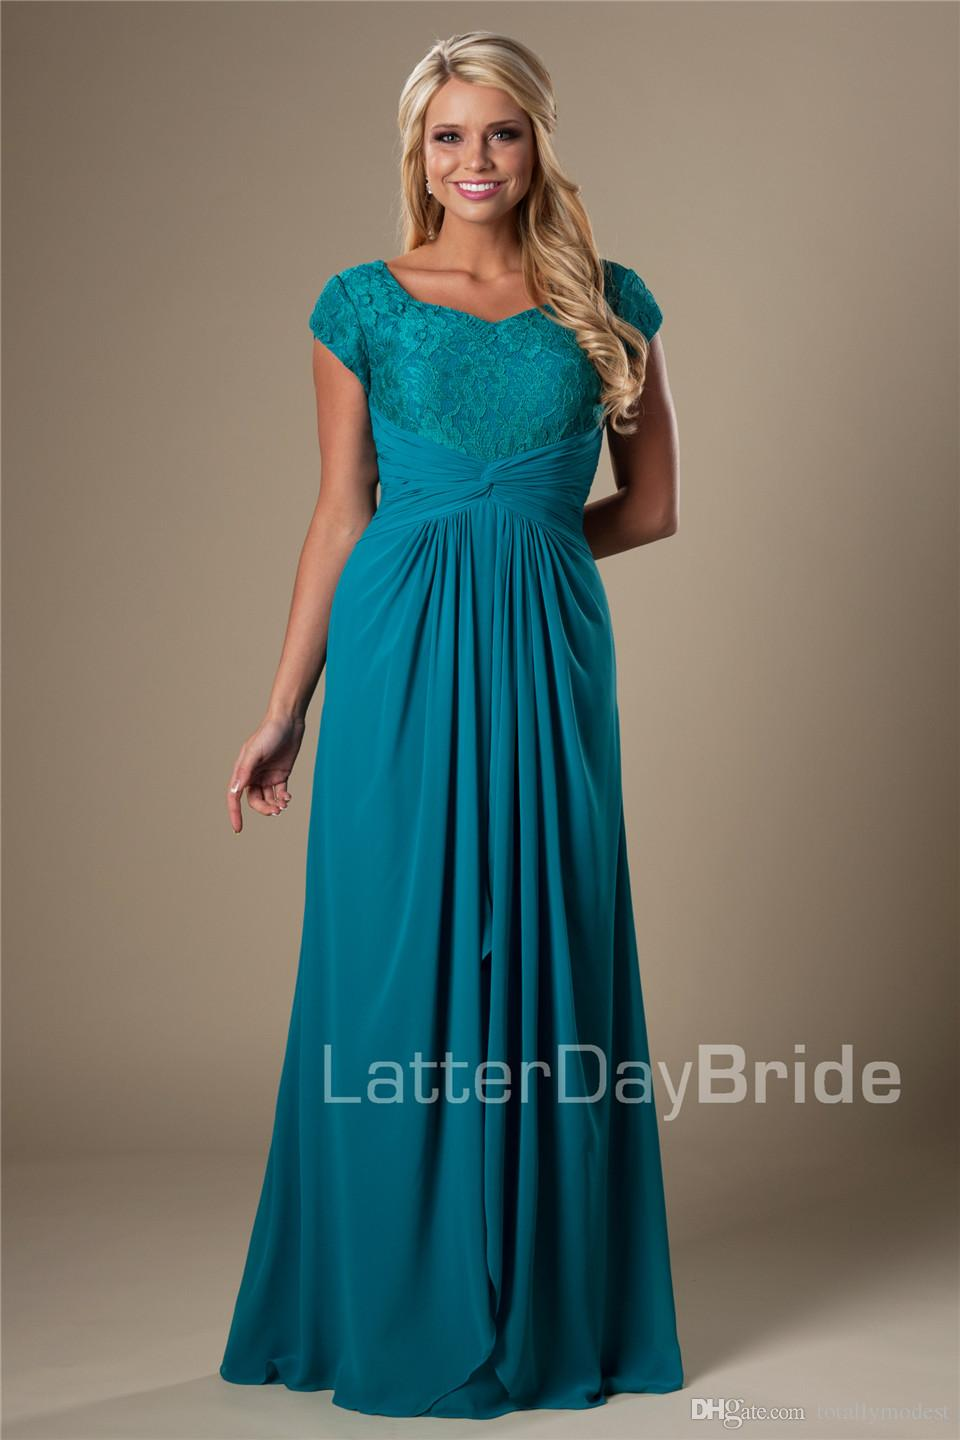 Teal Vintage Lace Chiffon Modest Bridesmaid Dresses 2016 With Cap Sleeves Long Floor Temple